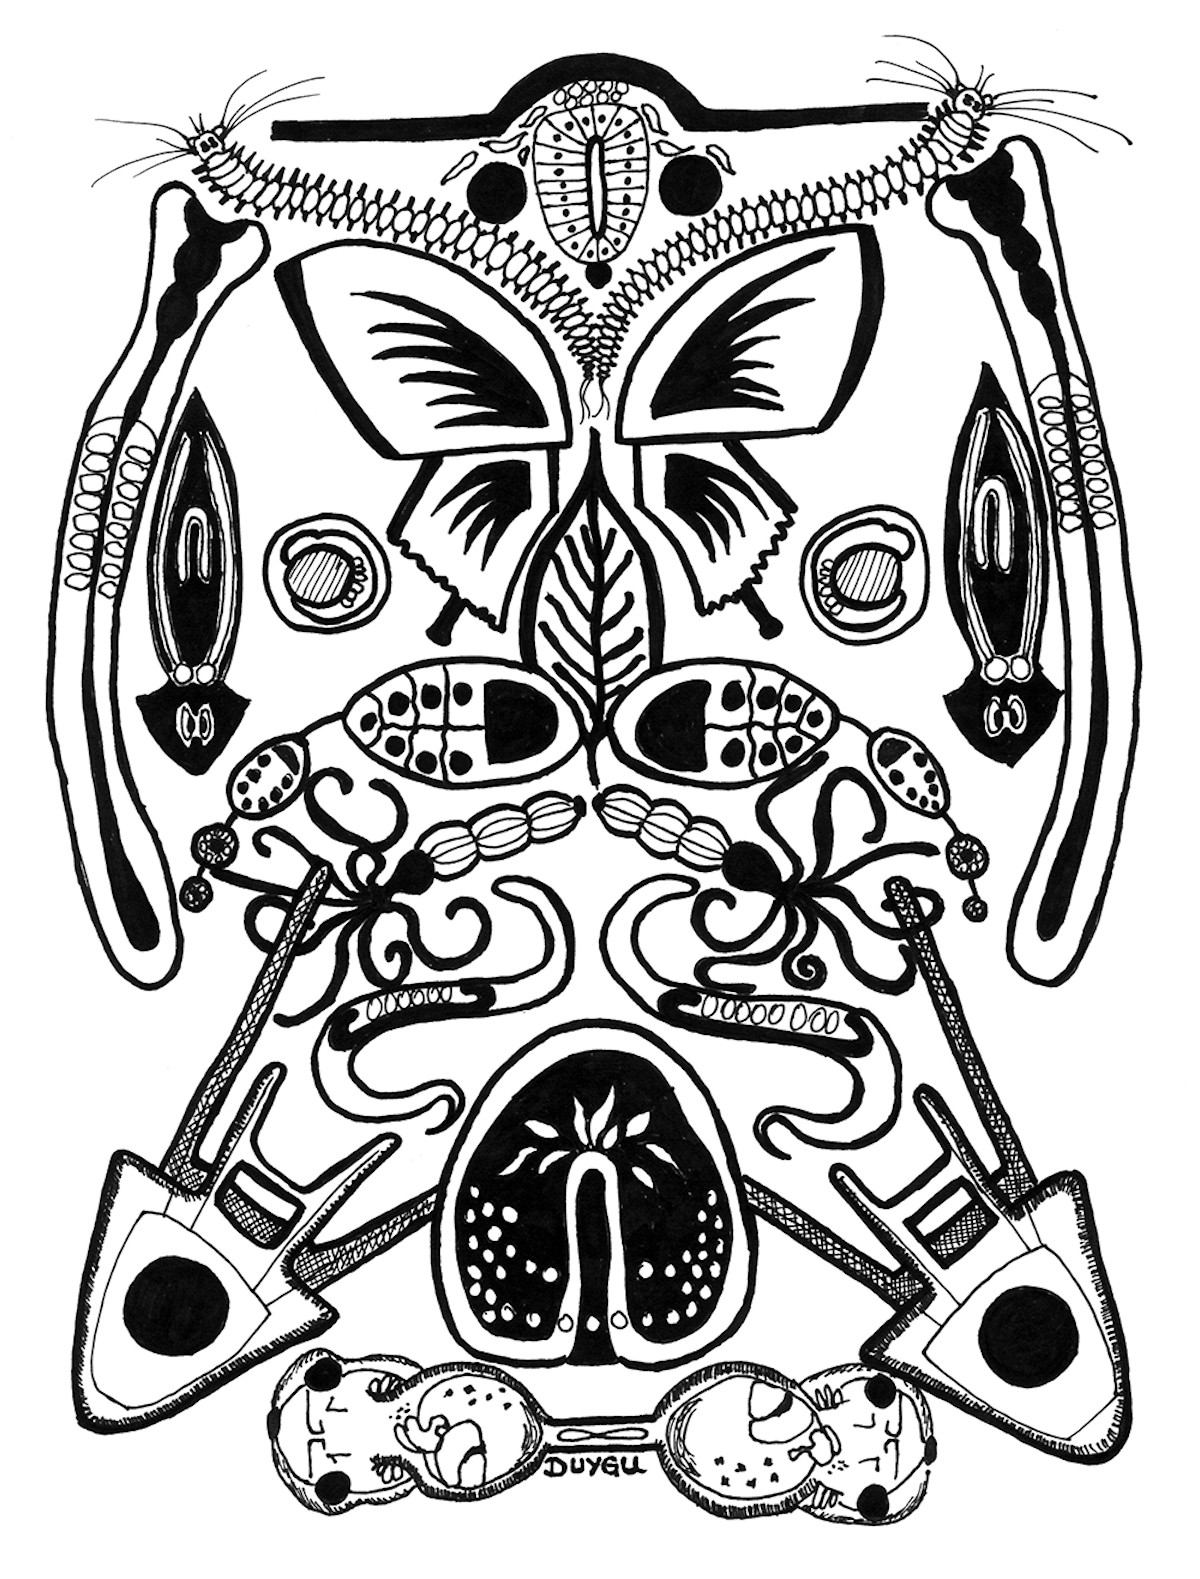 Black and white illustration of various embryos and invertebrates arranged to reflect across vertical axis to form a rectangle-like shape